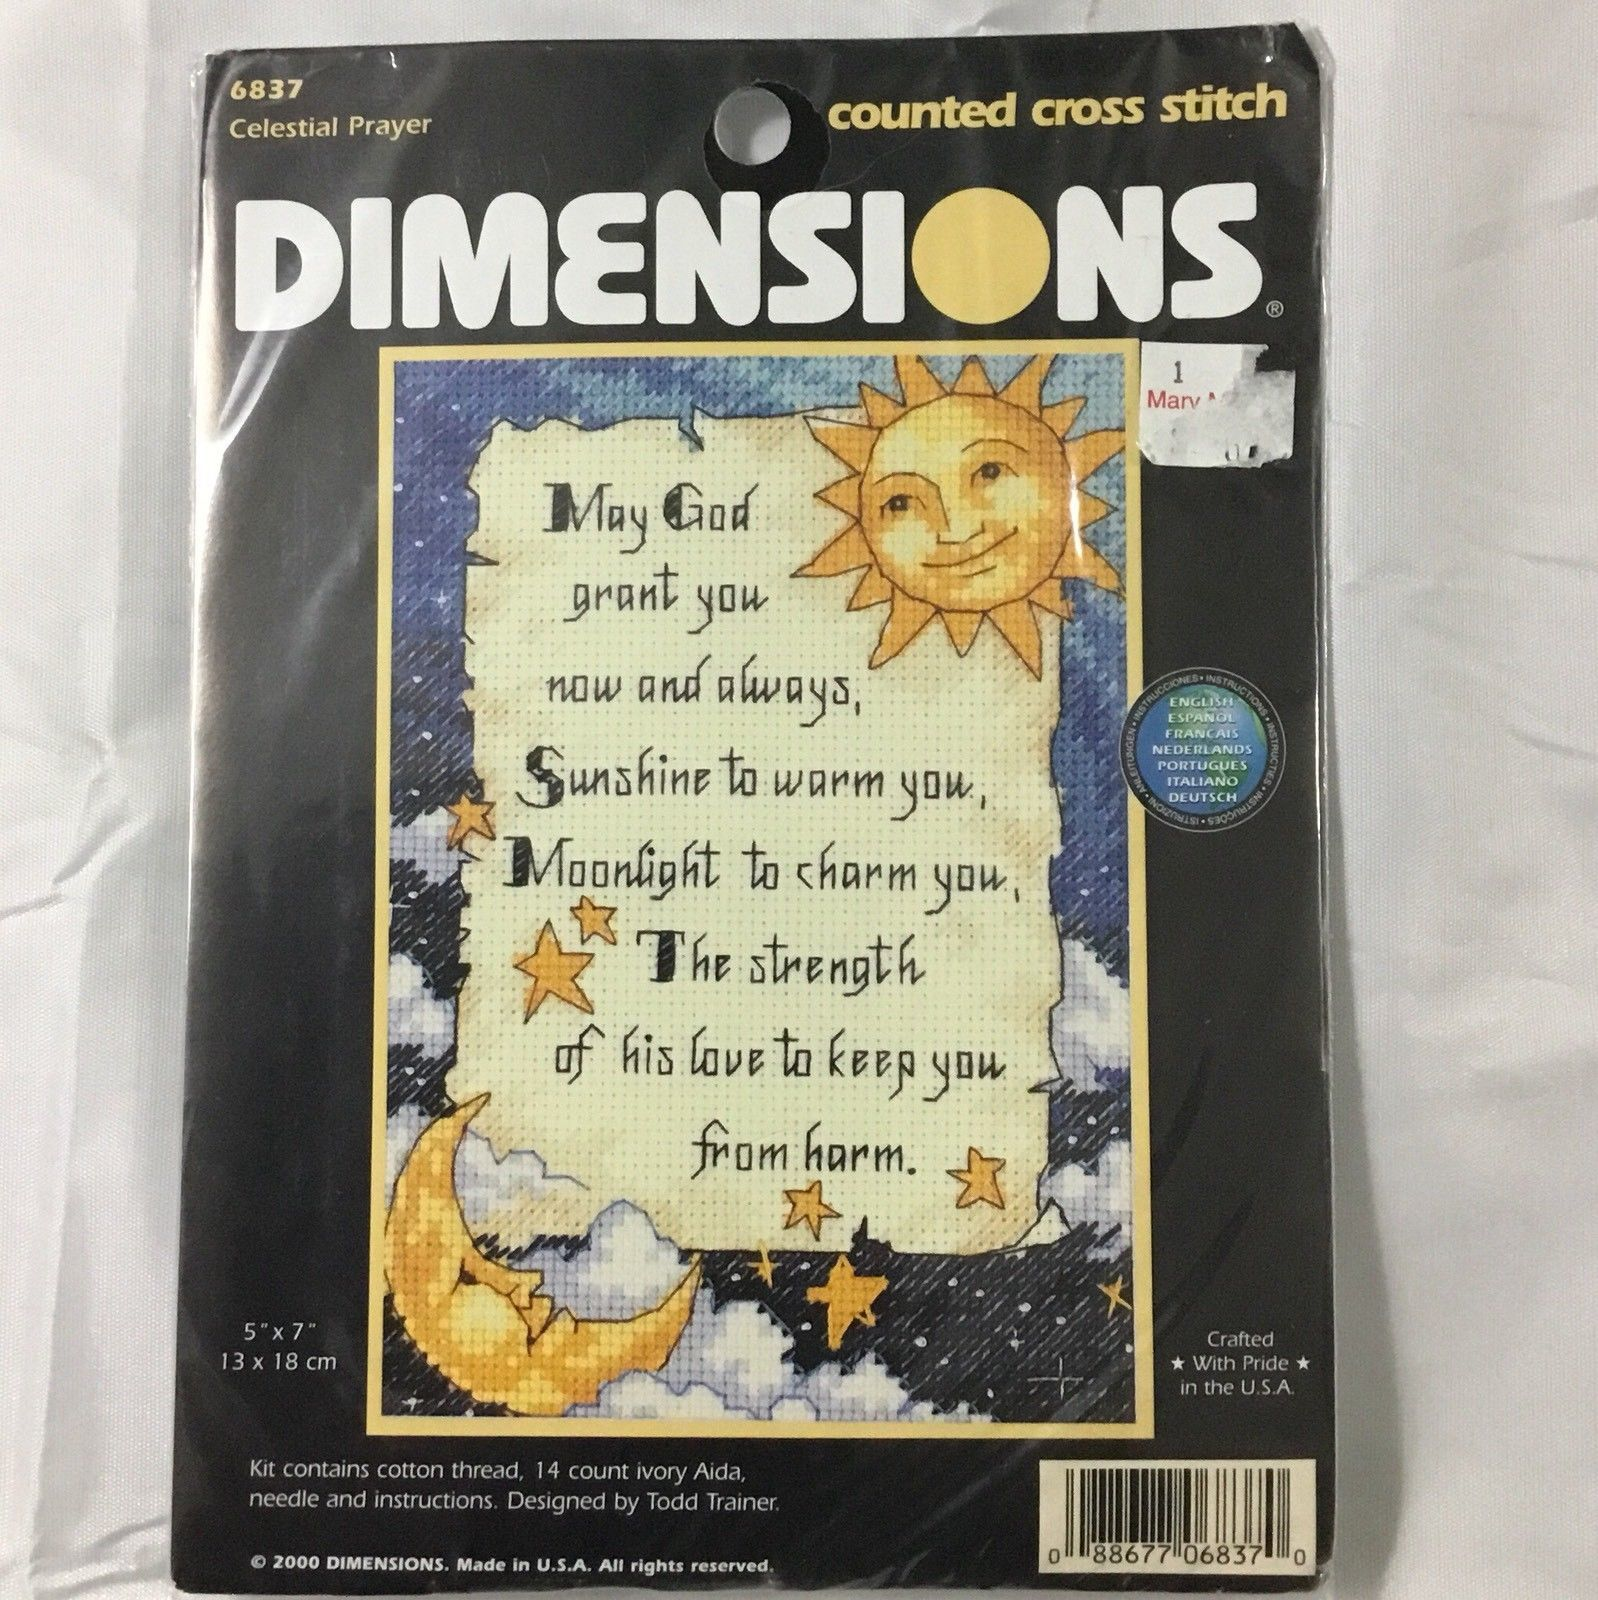 Primary image for Dimensions 6837 Celestial Prayer Cross Stitch Kit 5x7 2000 Todd Trainer USA